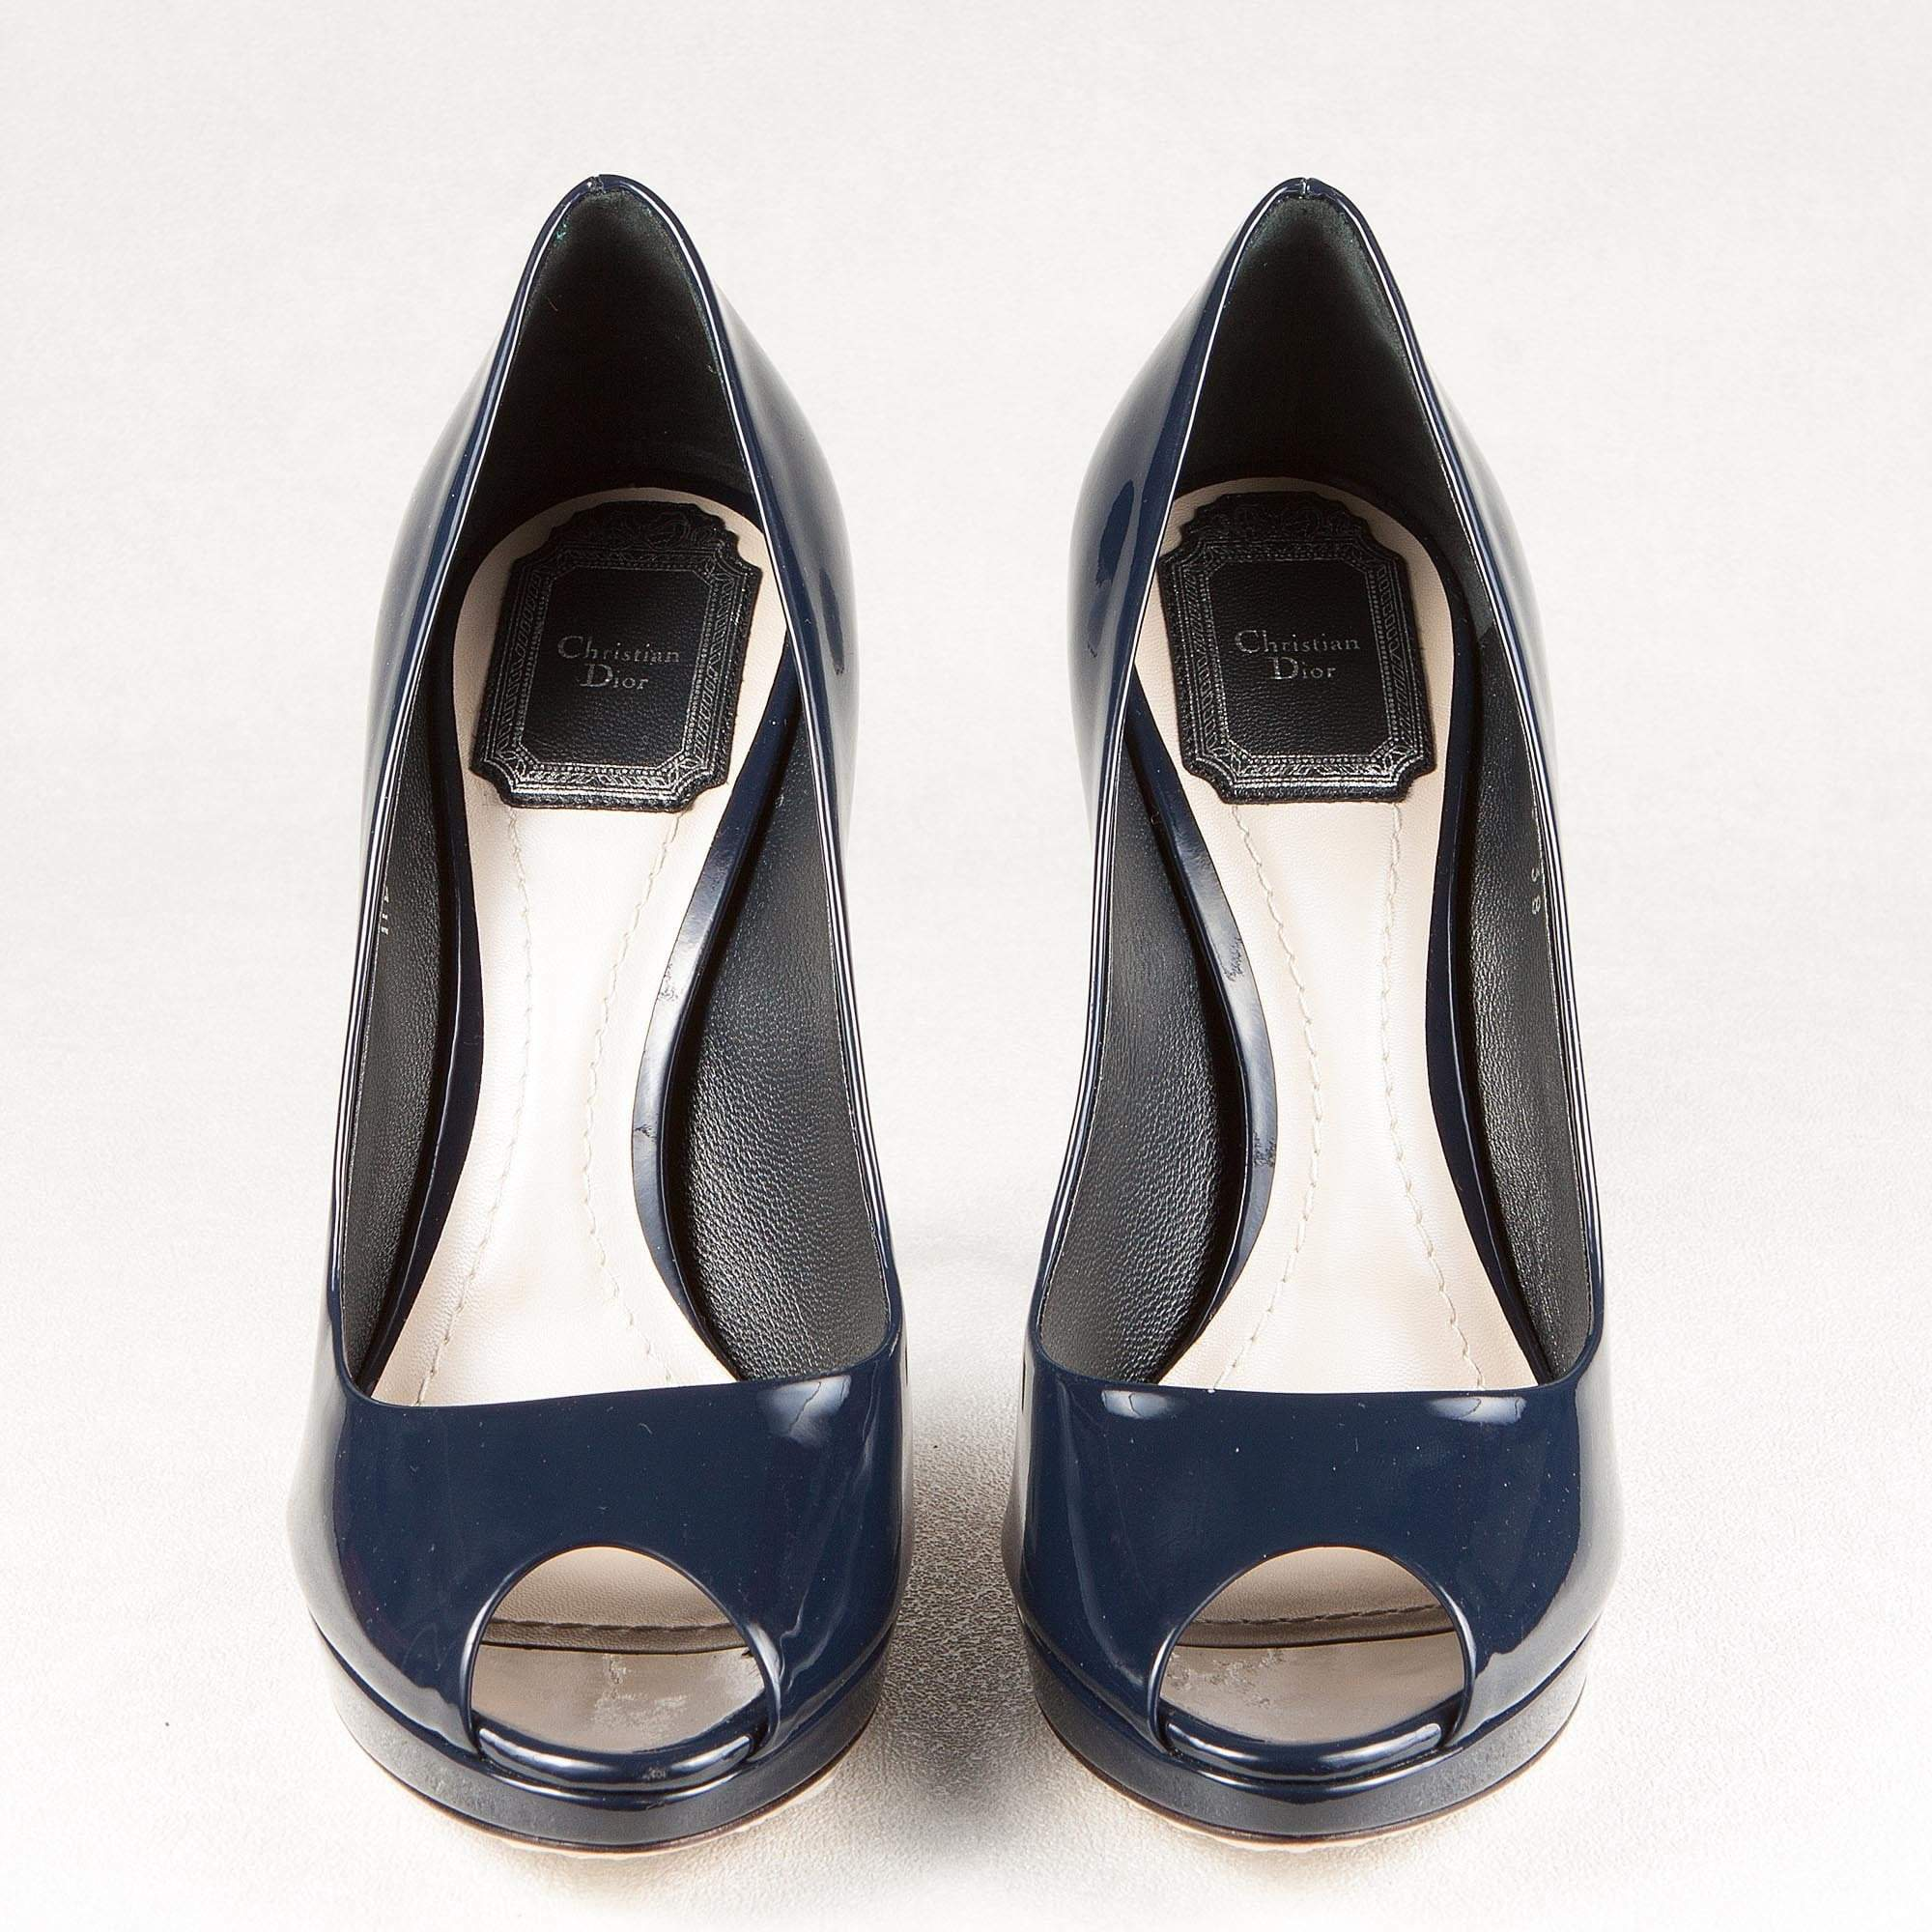 Navy Blue Patent Leather 'Miss Dior' Peep Toe Pumps